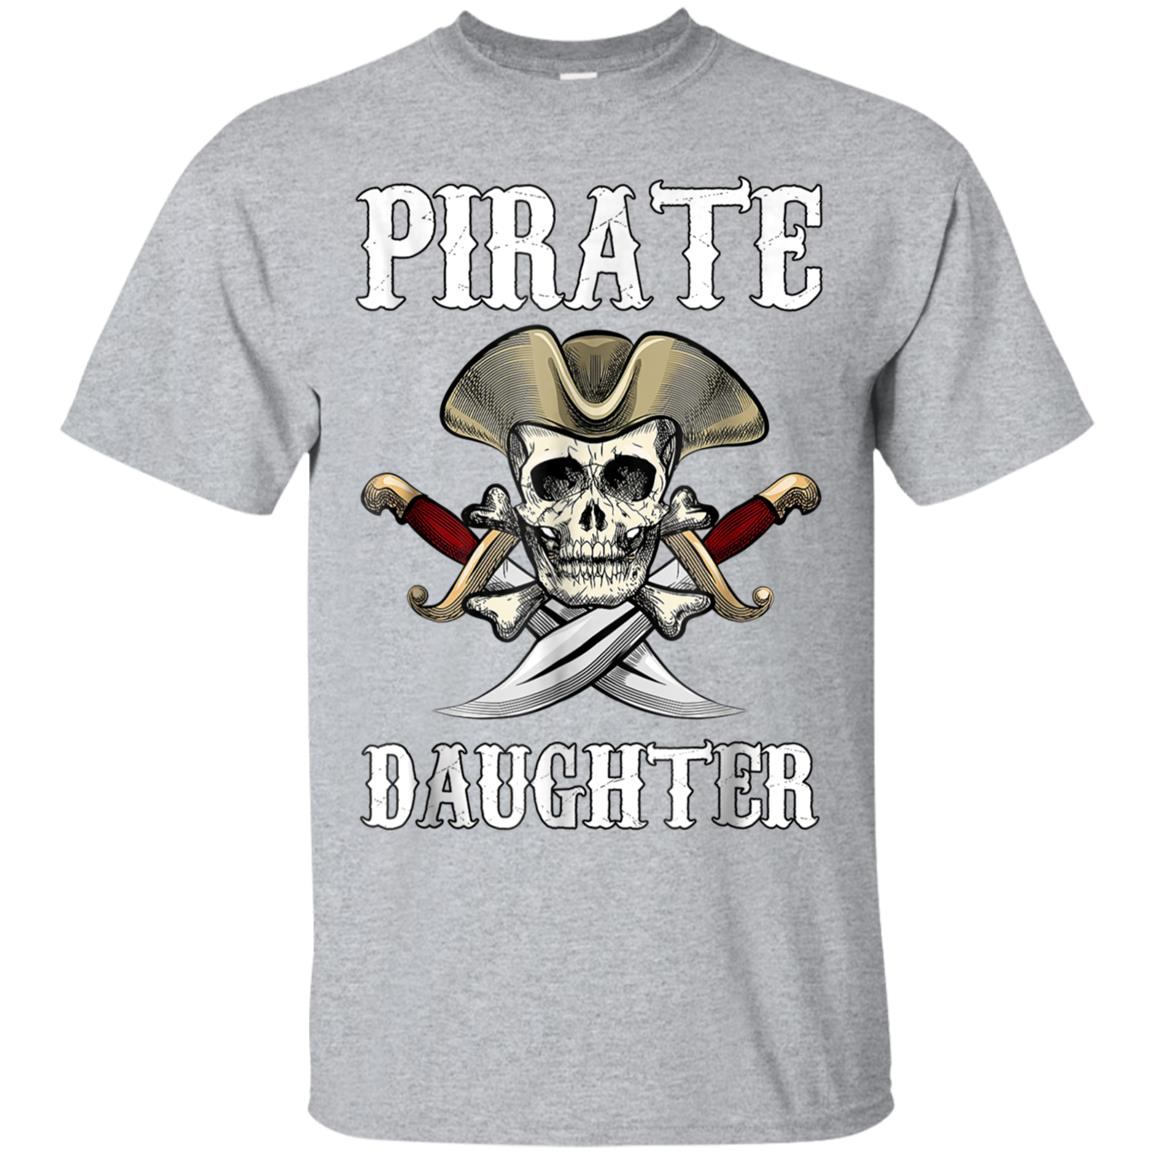 Pirate Daughter Halloween T-Shirt Skull Adult Costume Gifts 99promocode